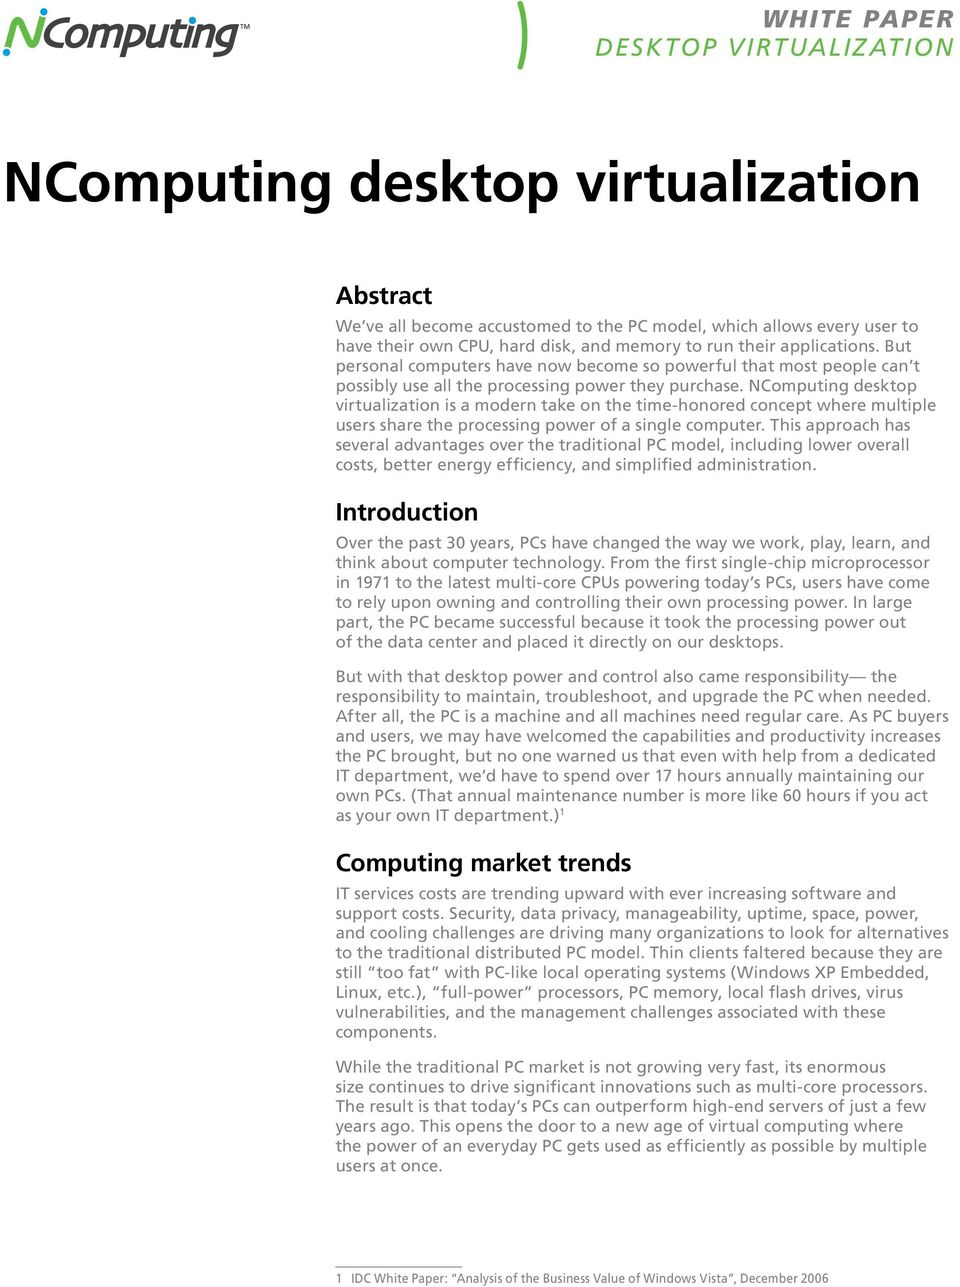 NComputing desktop virtualization is a modern take on the time-honored concept where multiple users share the processing power of a single computer.